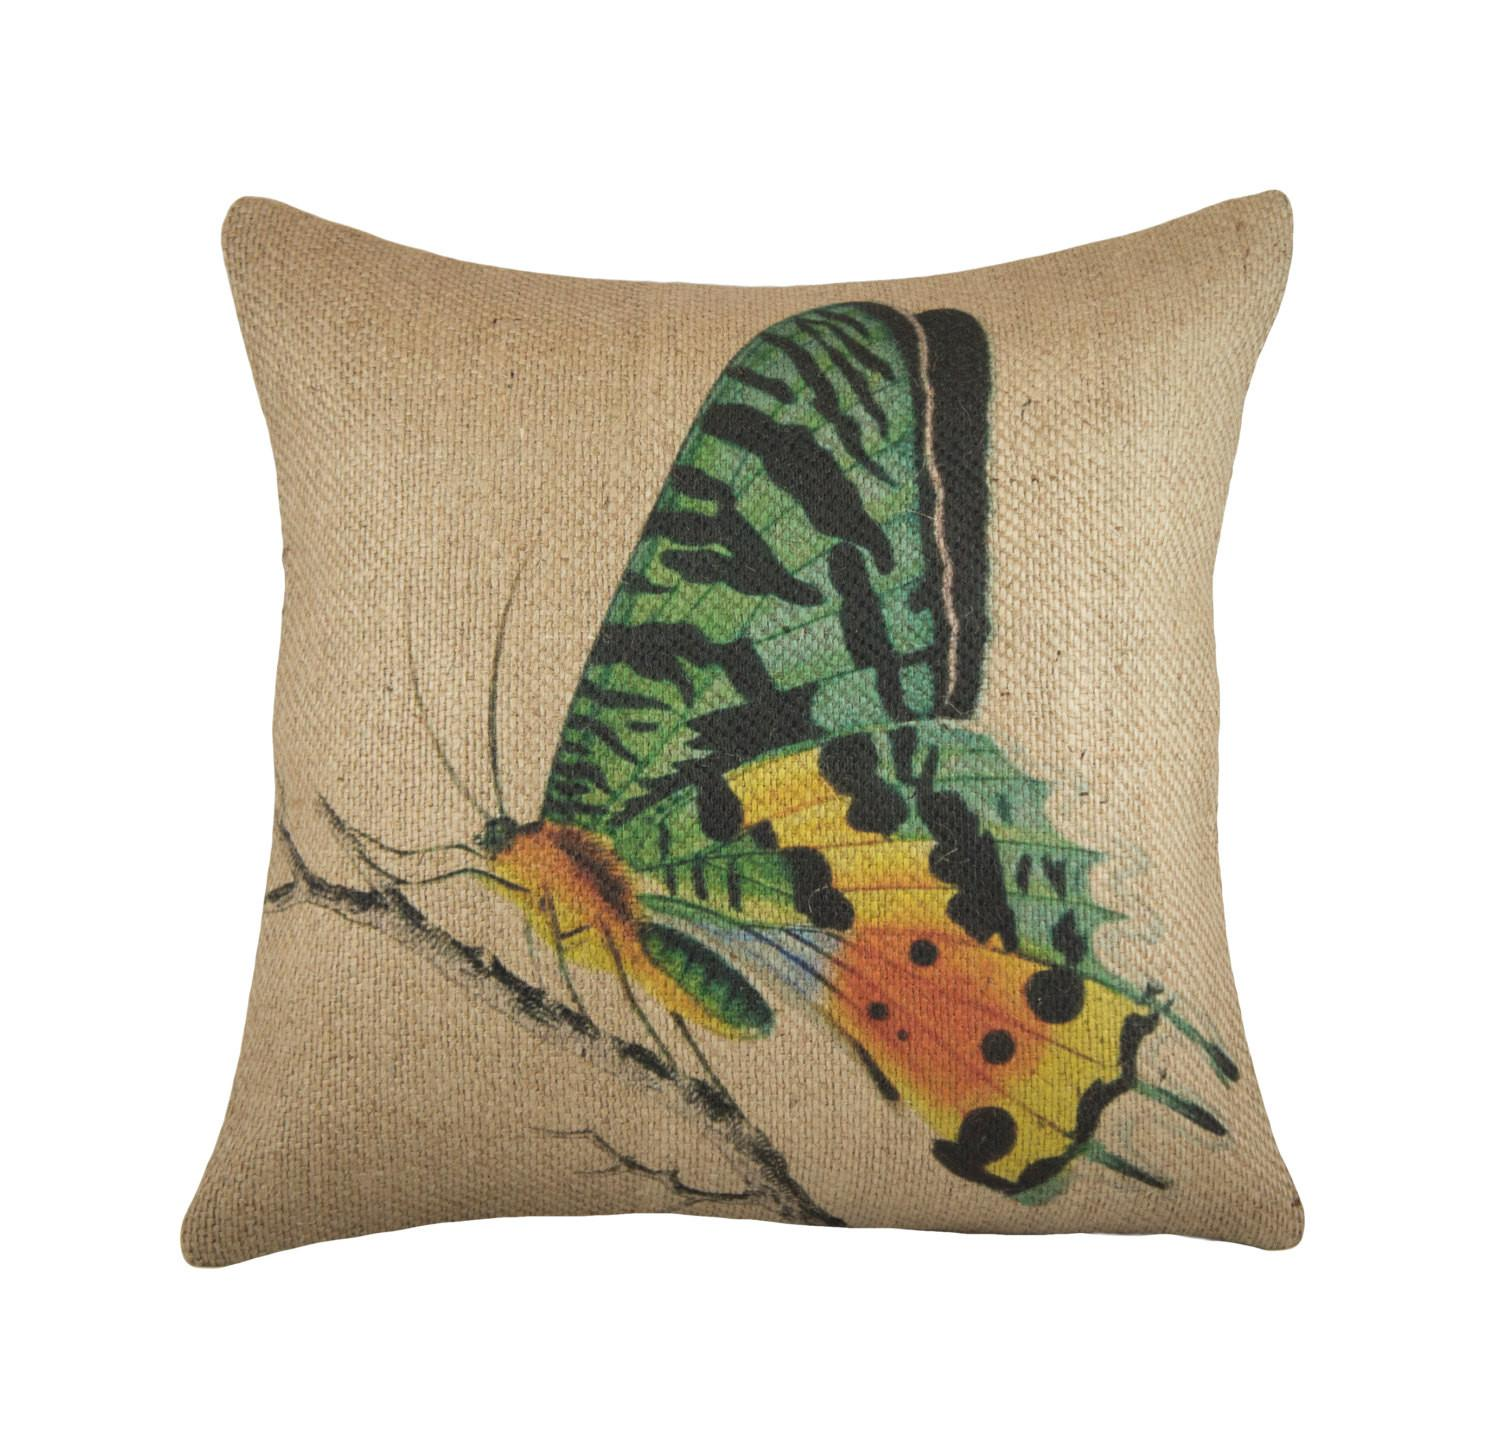 Burlap Butterfly Pillow Cover Decorative Throw